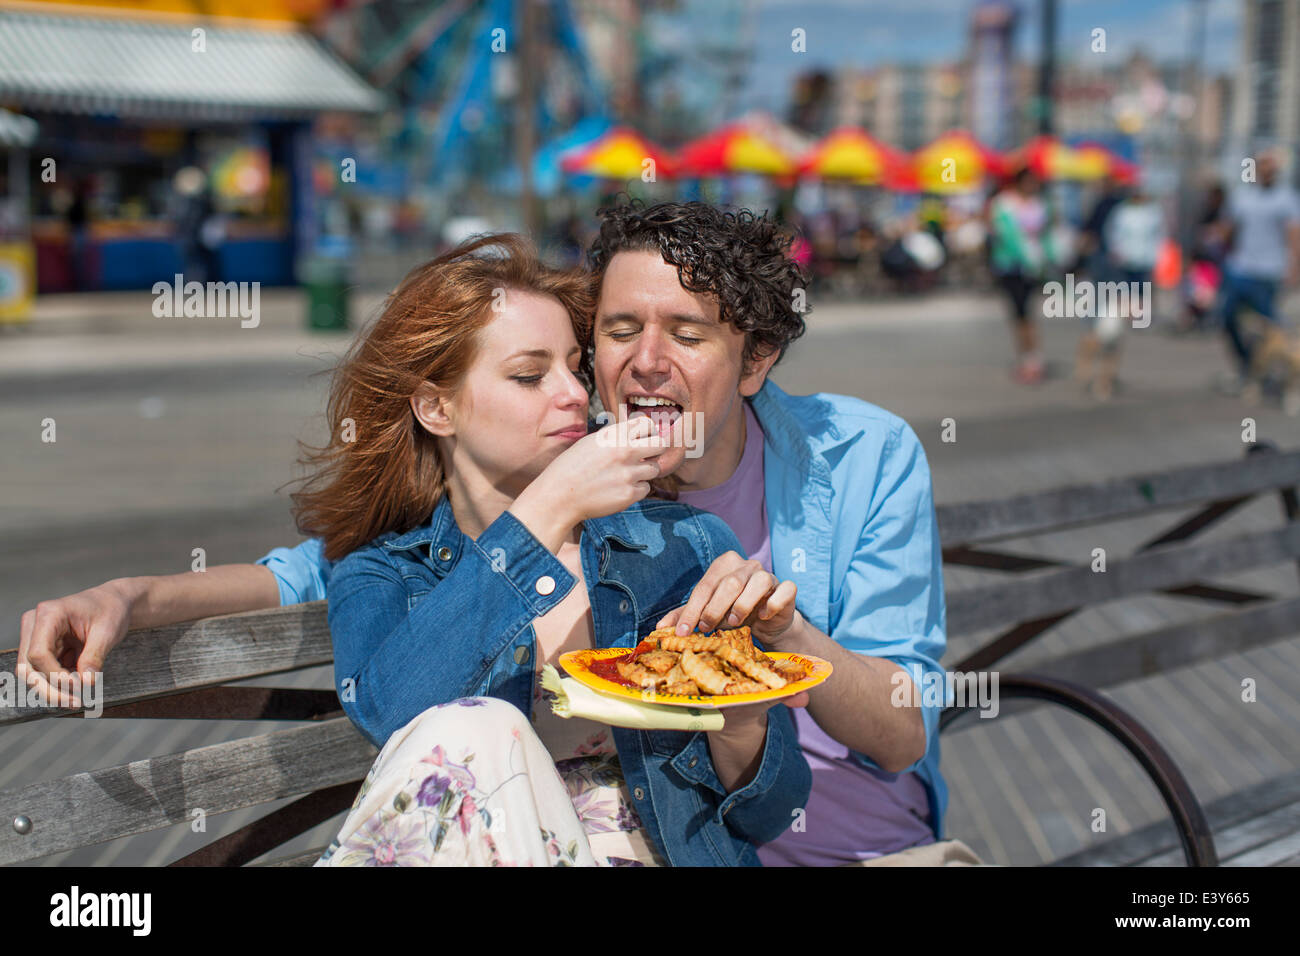 Romantic couple eating chips at amusement park - Stock Image